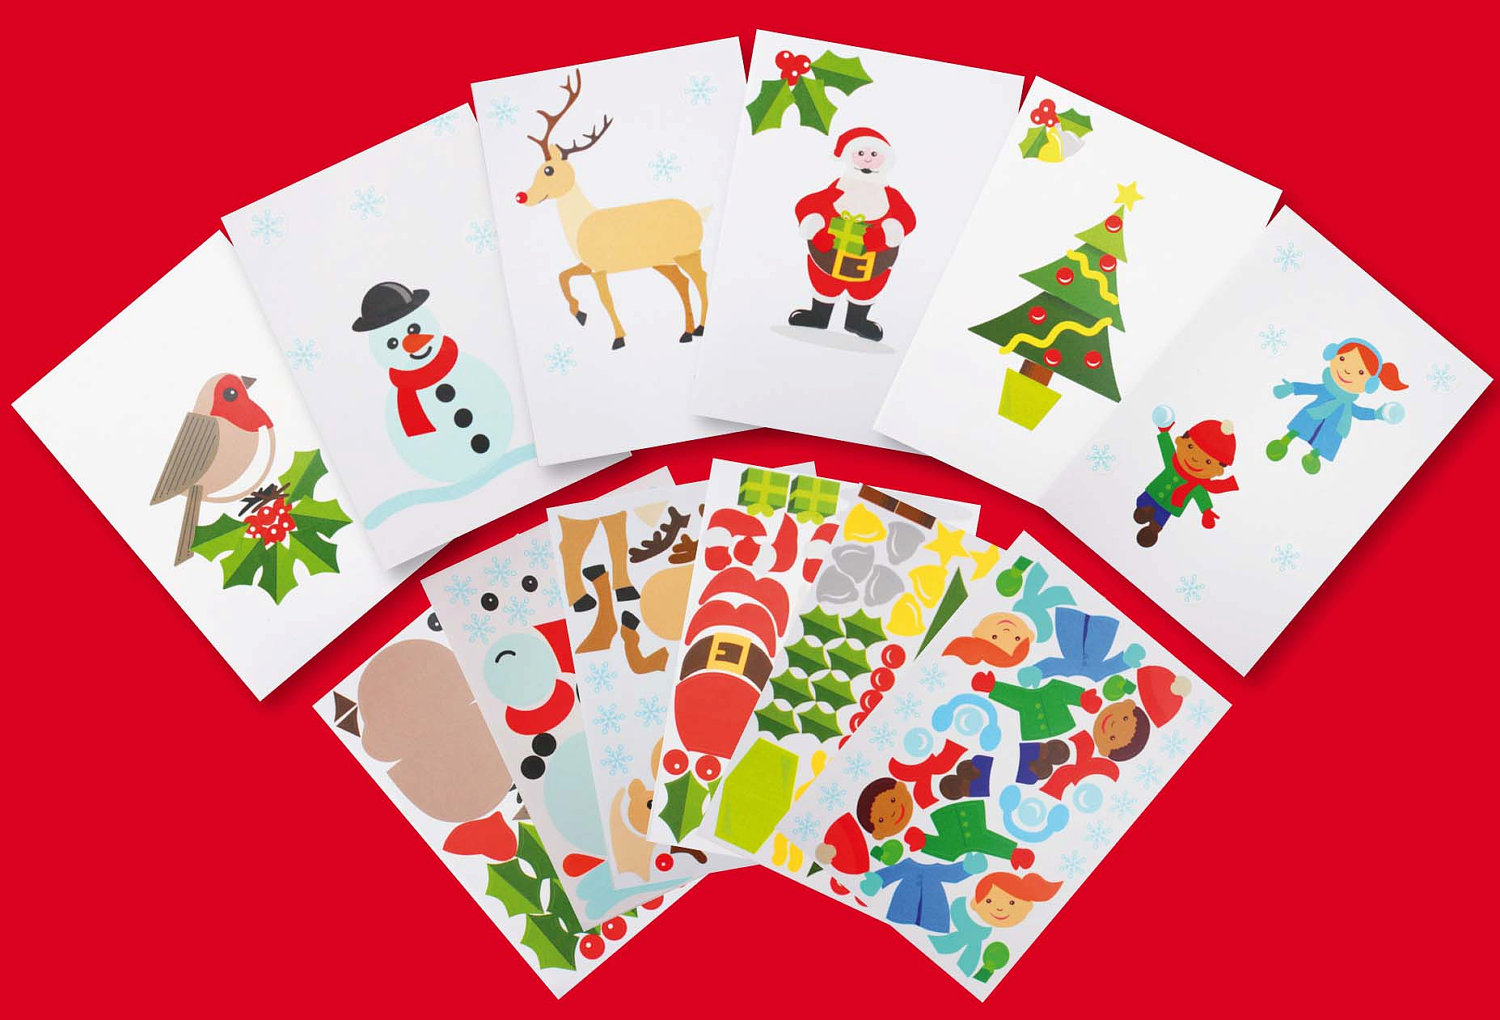 http://www.geekextreme.com/wp-content/uploads/2011/12/Christmas-Card-Sticker-Kit.jpg